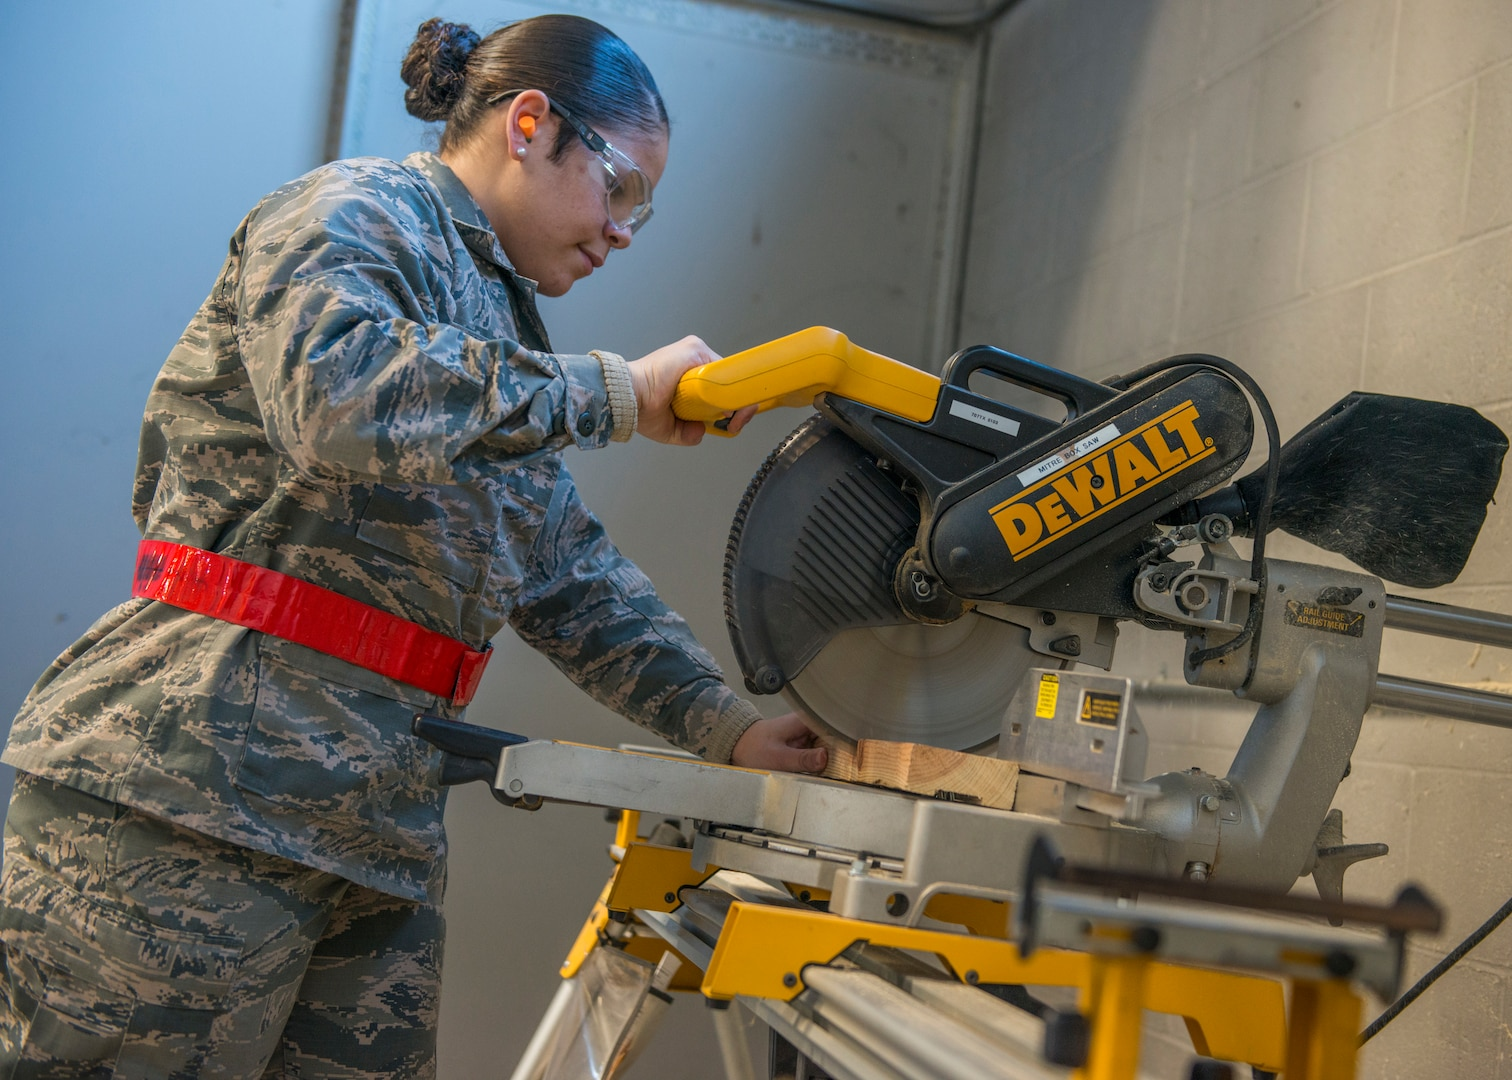 Airman Starr Figueroa, 103rd Logistics Readiness Squadron traffic management specialist, operates an arm saw at Bradley Air National Guard Base, East Granby, Conn.,Feb. 8, 2020. Traffic management specialists construct custom shipping containers to Air Force specifications for safe delivery of equipment, including C-130H wheels.